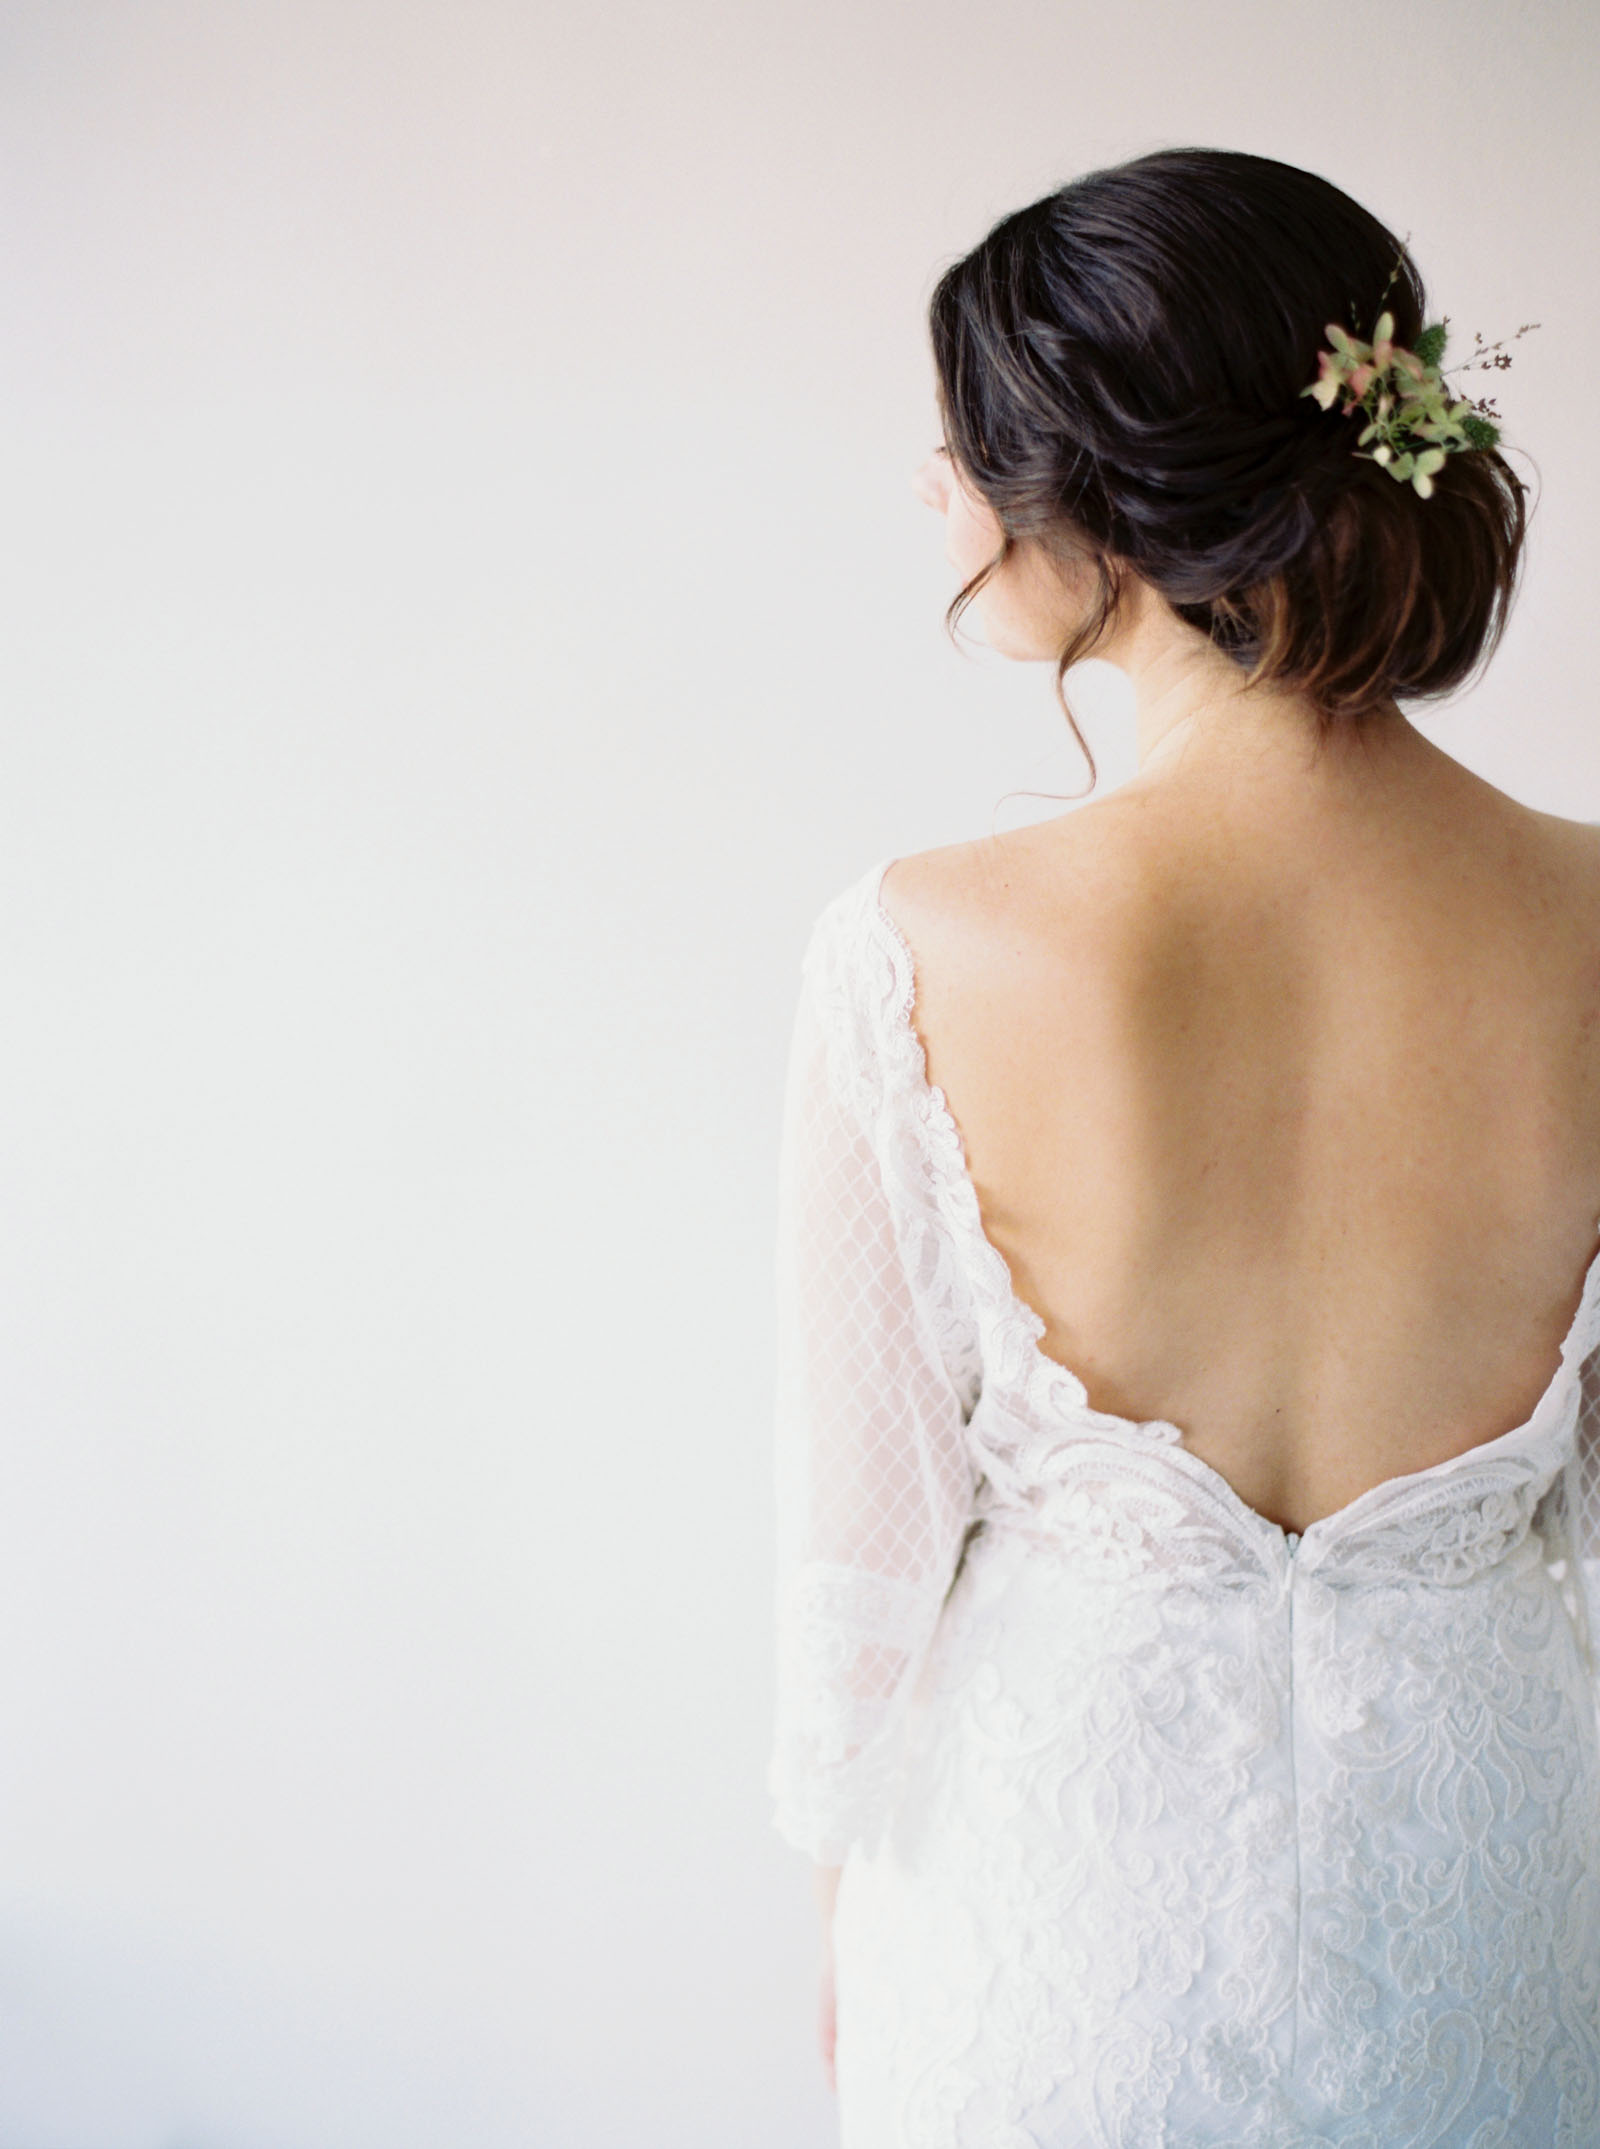 Low back wedding gown captured on film by Seattle Wedding Photographer Anna Peters